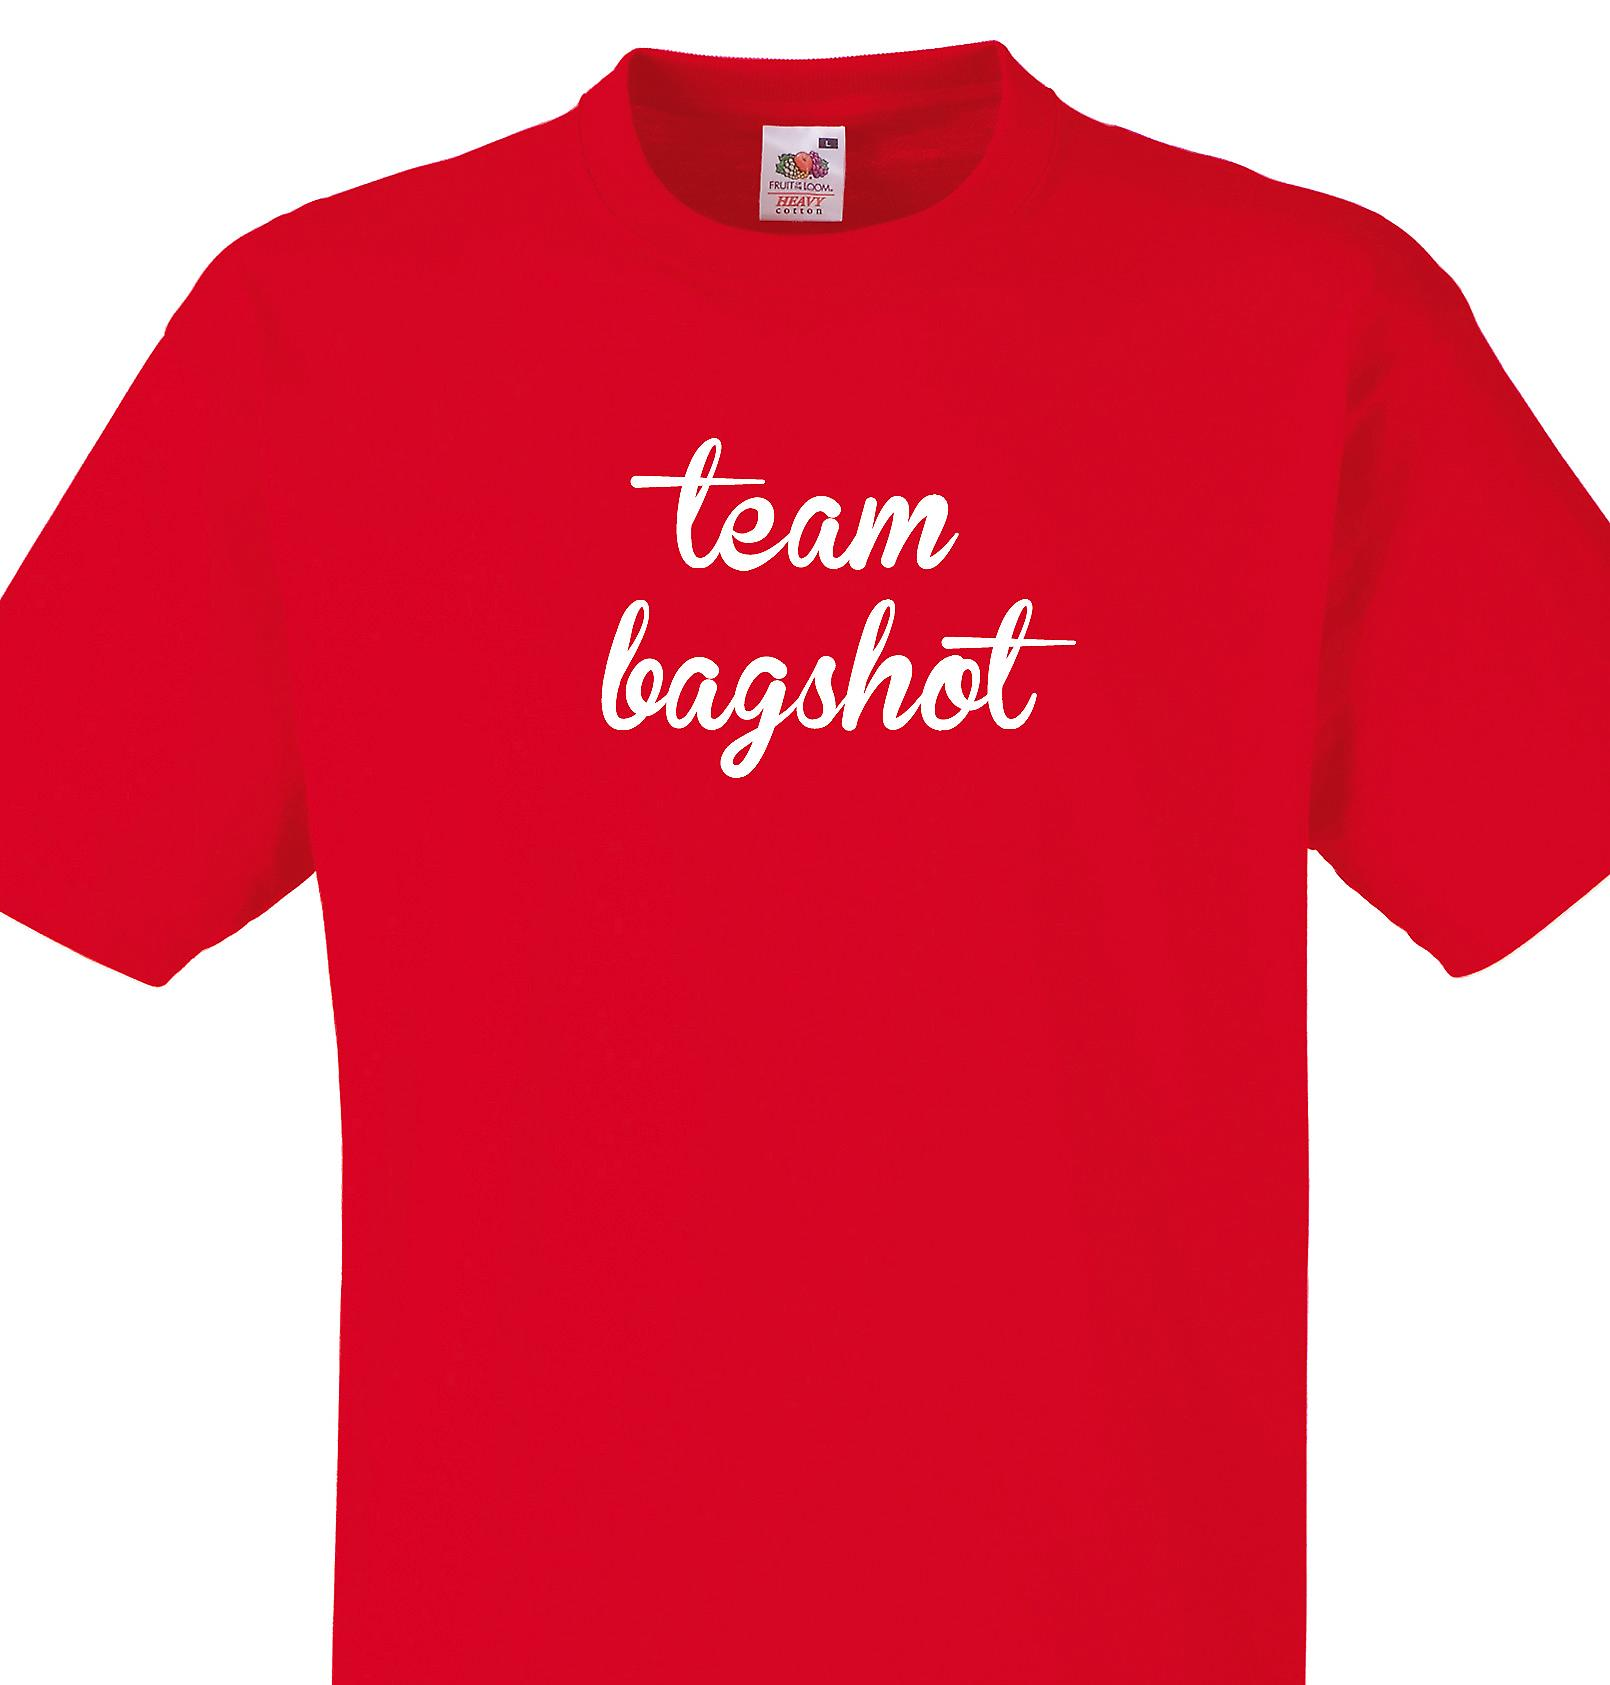 Team Bagshot Red T shirt